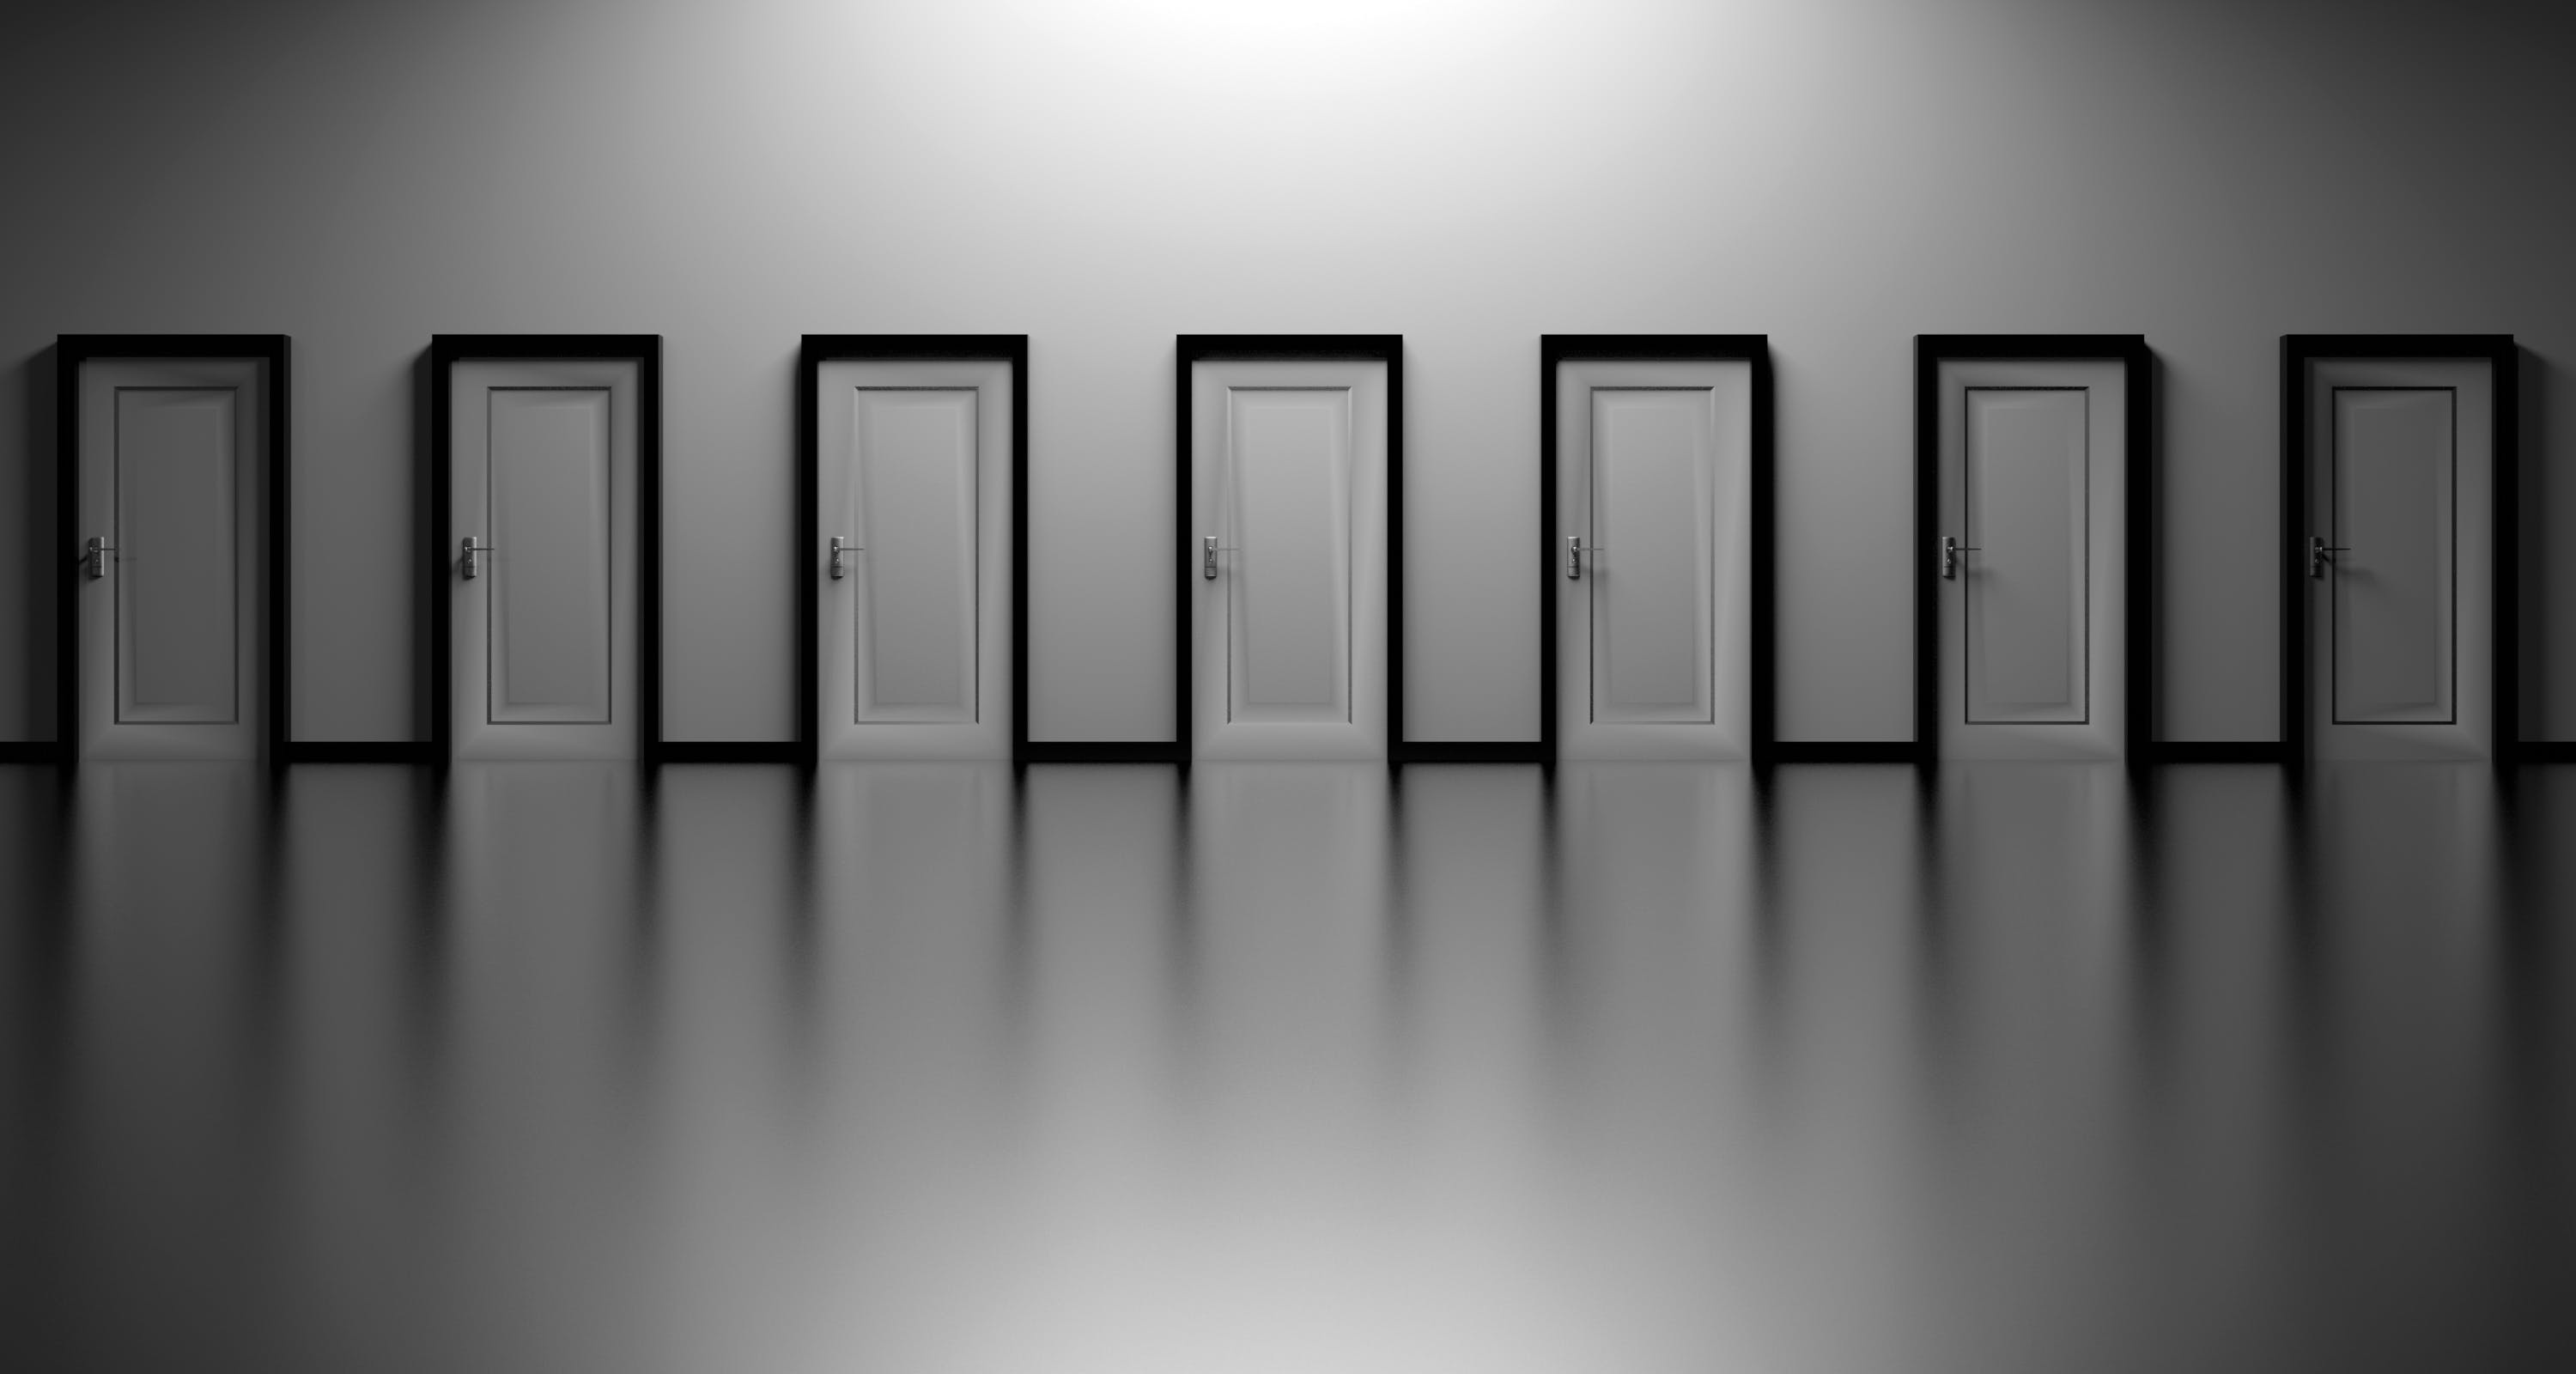 Free stock photo of black-and-white, decision, doors, opportunity